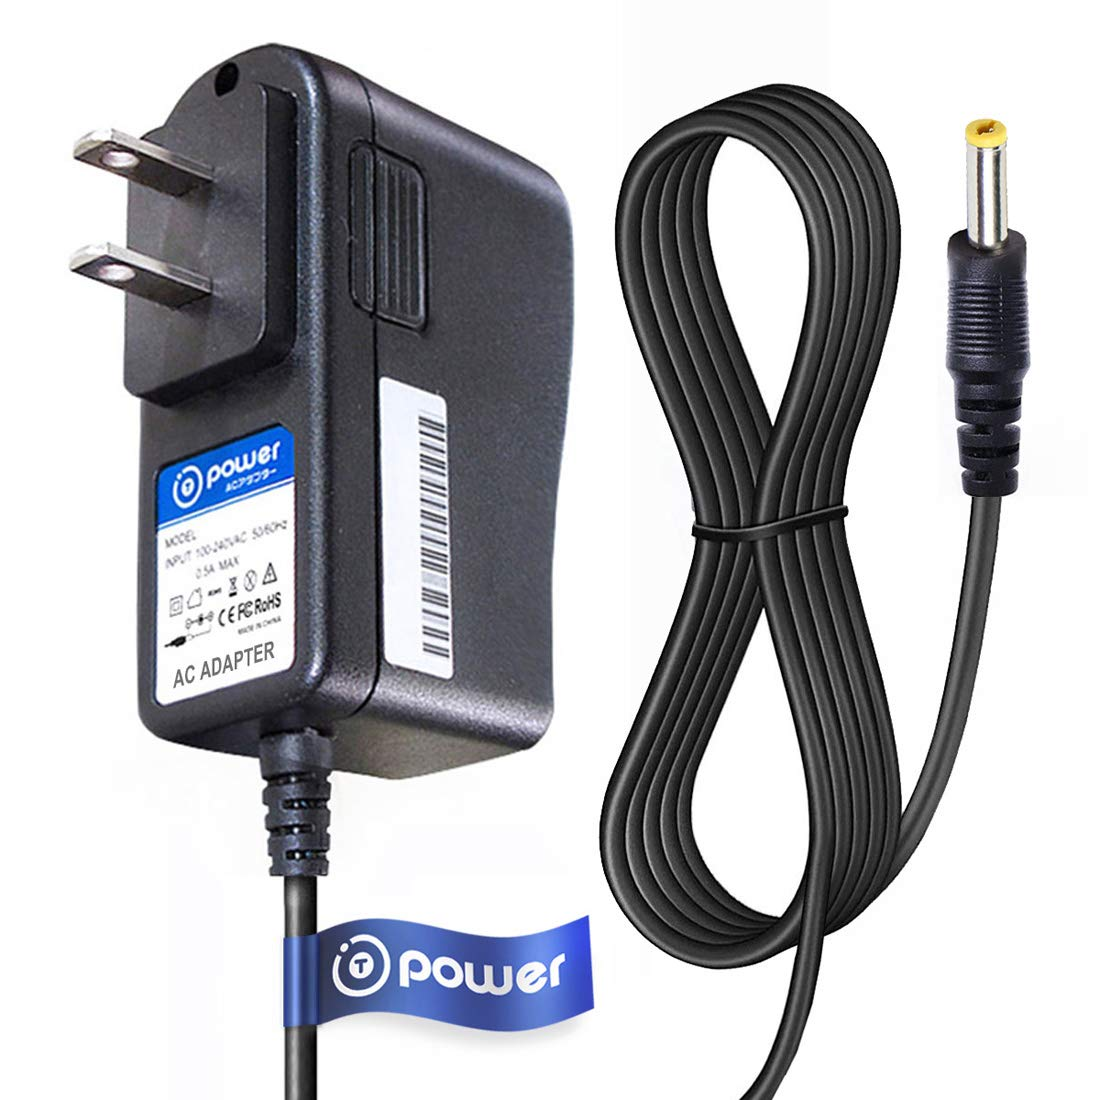 T-Power AC Adapter Charge for Vtech Safe /& Sound Baby Monitor DM221-2 PU 6.6ft Long Cable Parent Unit Replacement switching power supply cord